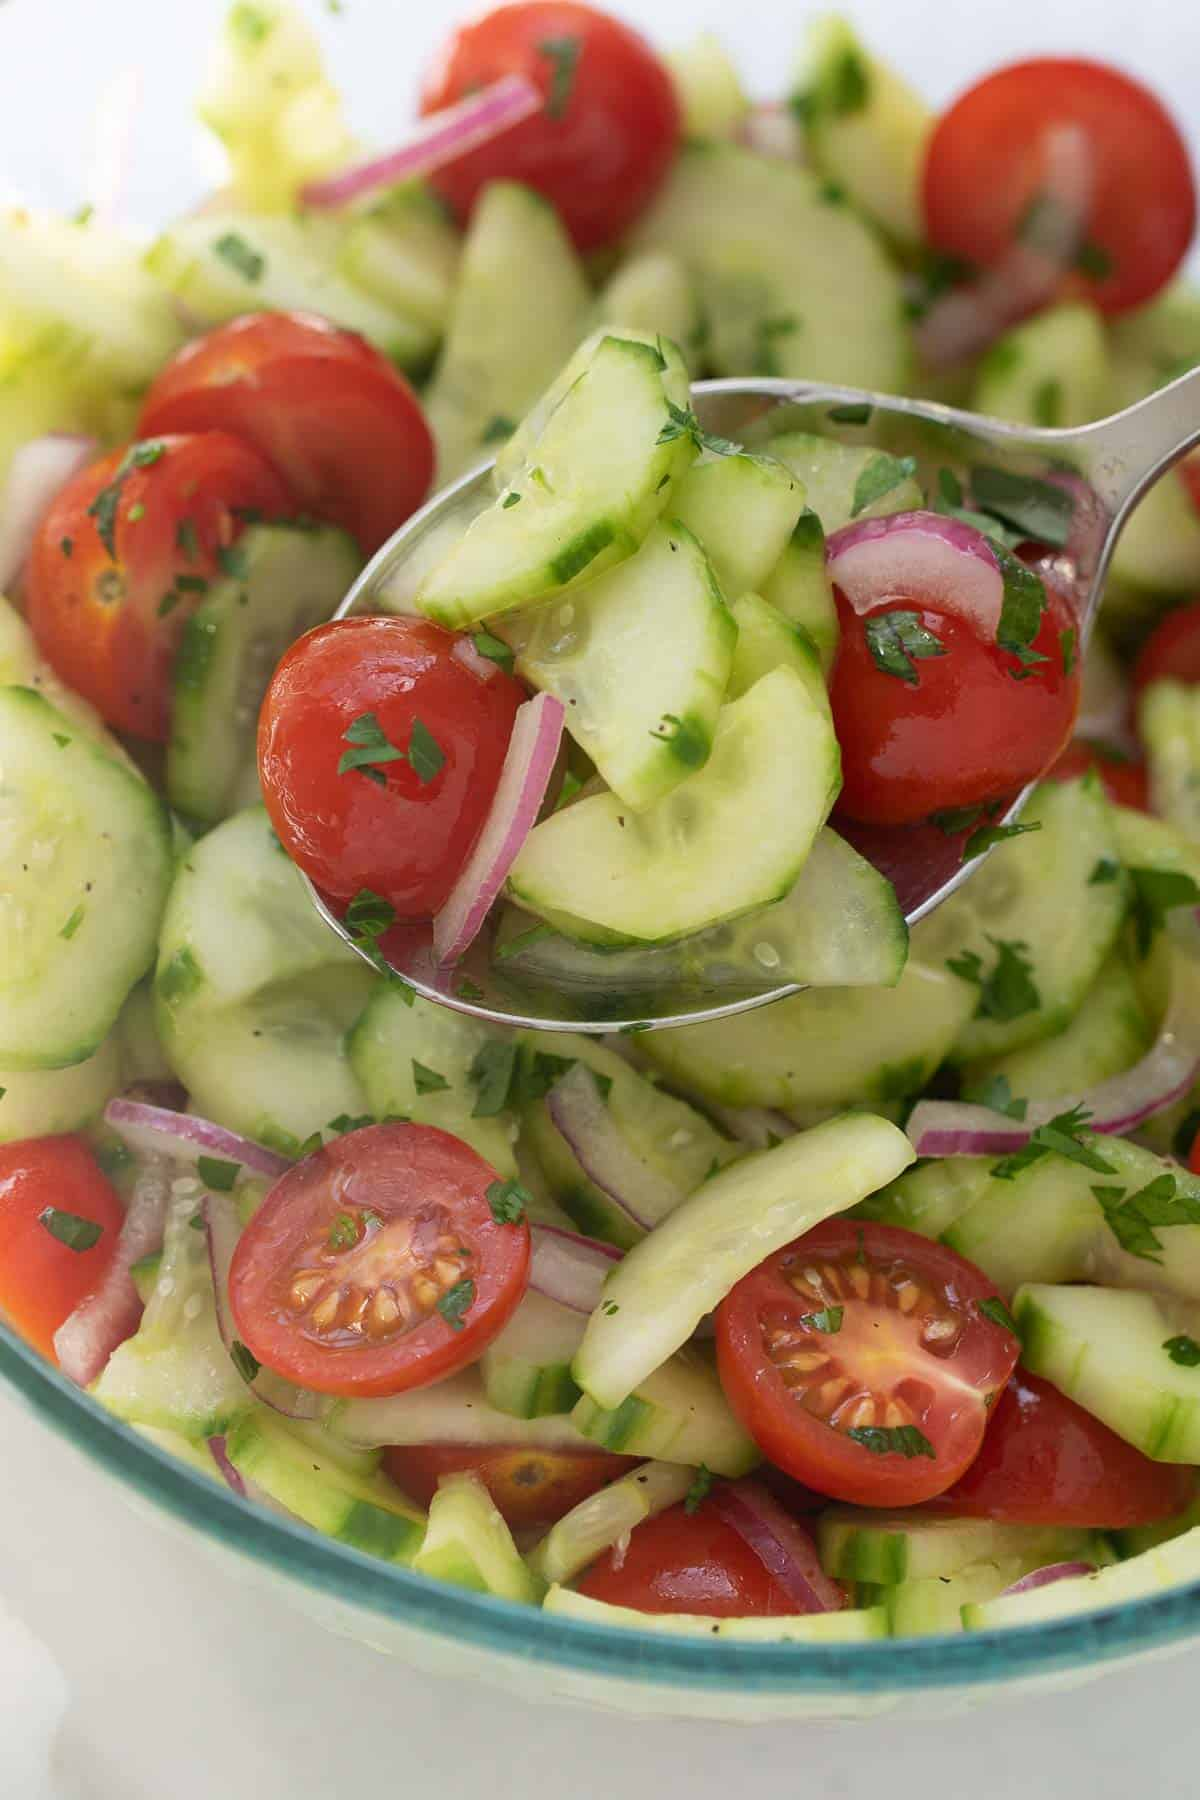 marinated vegetables (tomatoes, cucumbers, and red onion) in apple cider vinaigrette